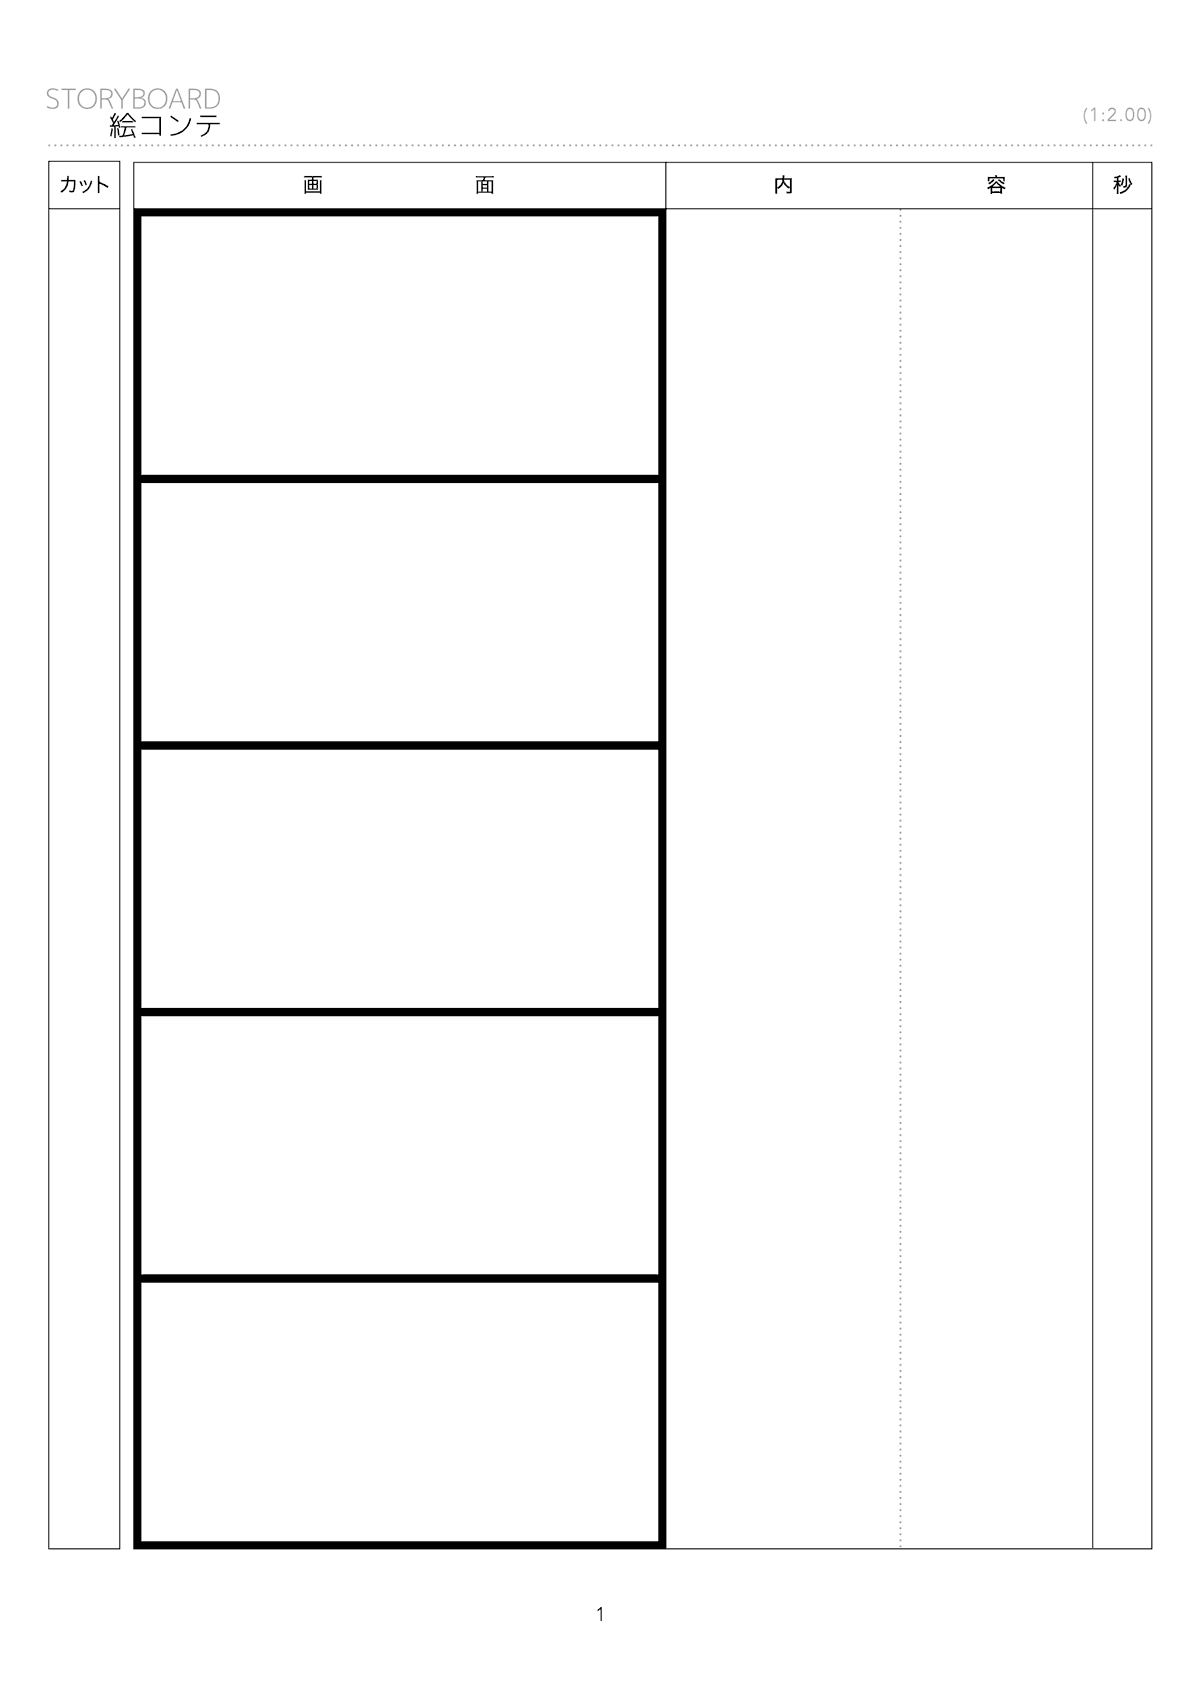 Free PDF Japanese anime storyboard template for 2:1 aspect ratio on DIN A4 vertical for print